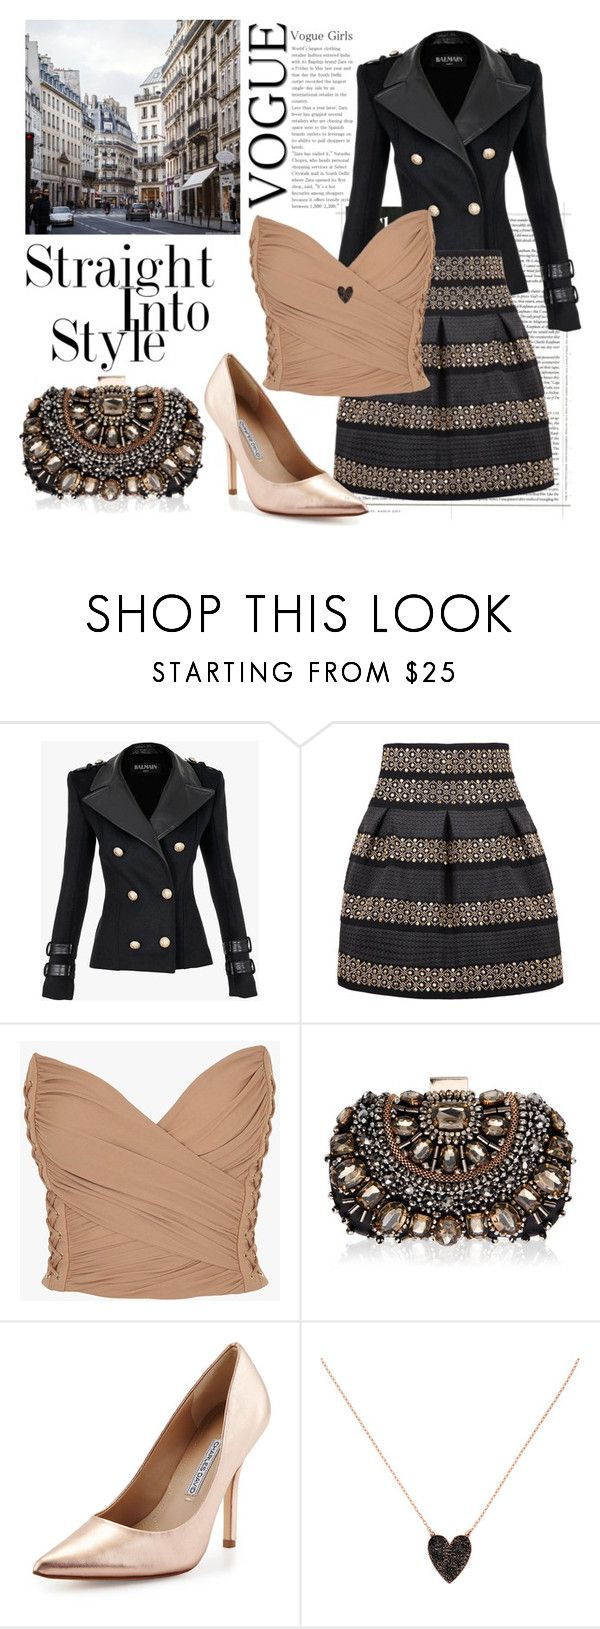 """16.12.2015"" by fashion-sense-xo ❤ liked on Polyvore featuring Balmain, Lipsy, Charles David and Jennifer Fisher"